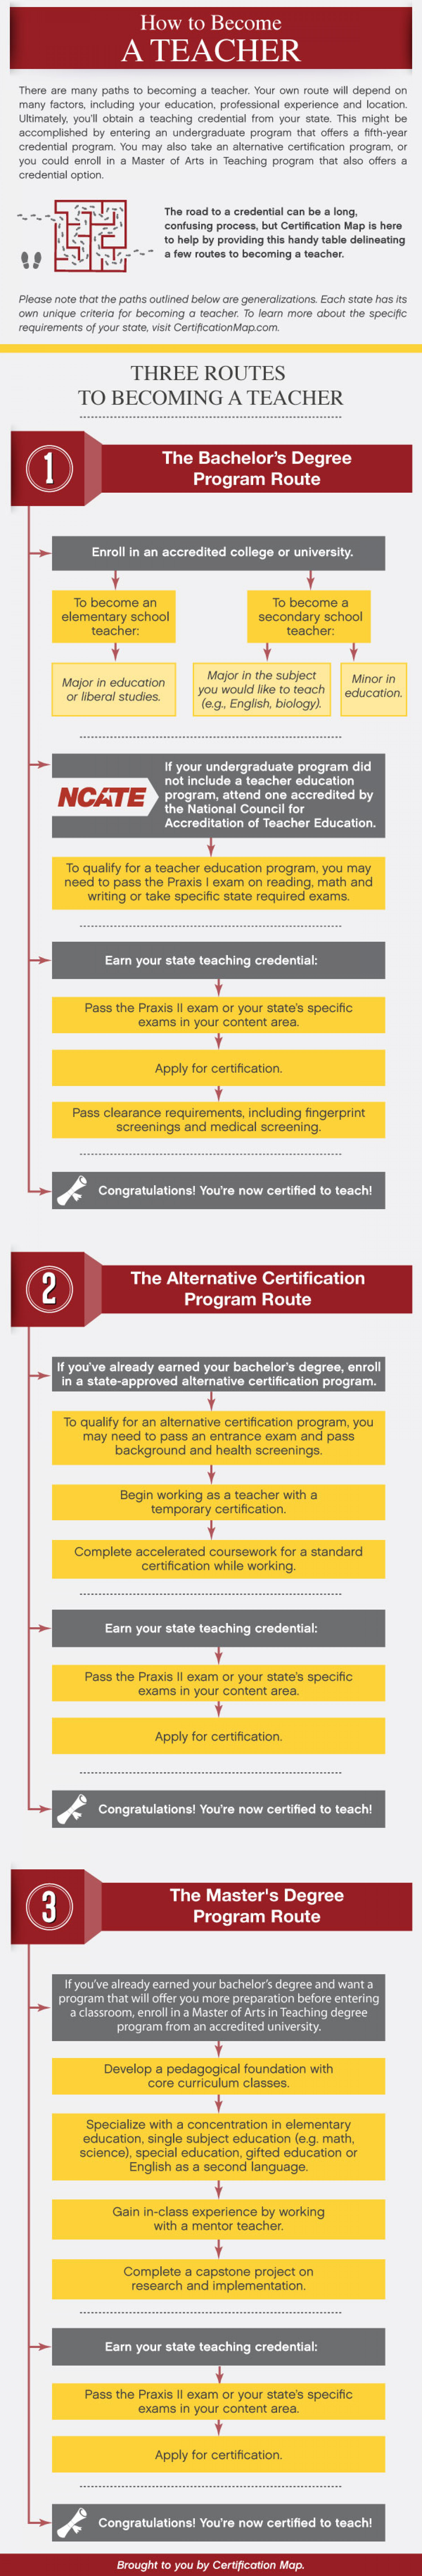 How to Become a Teacher Infographic